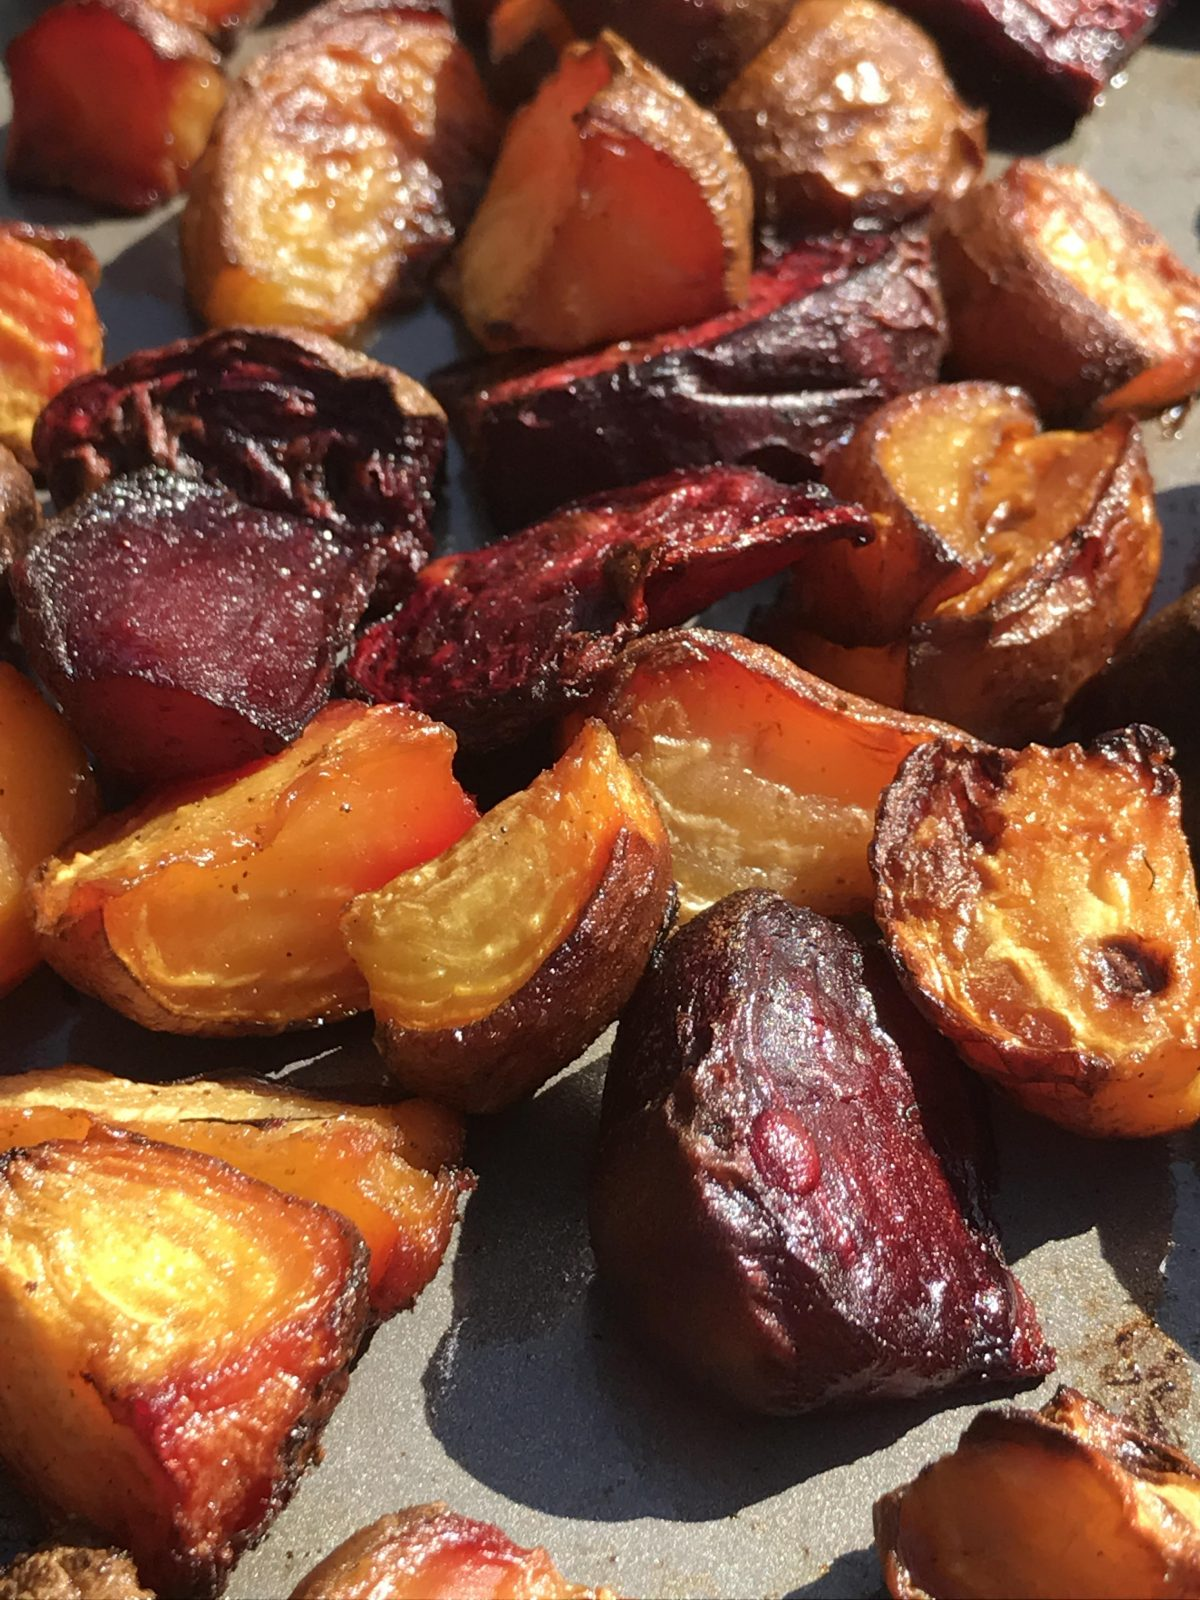 roasted golden and red beets